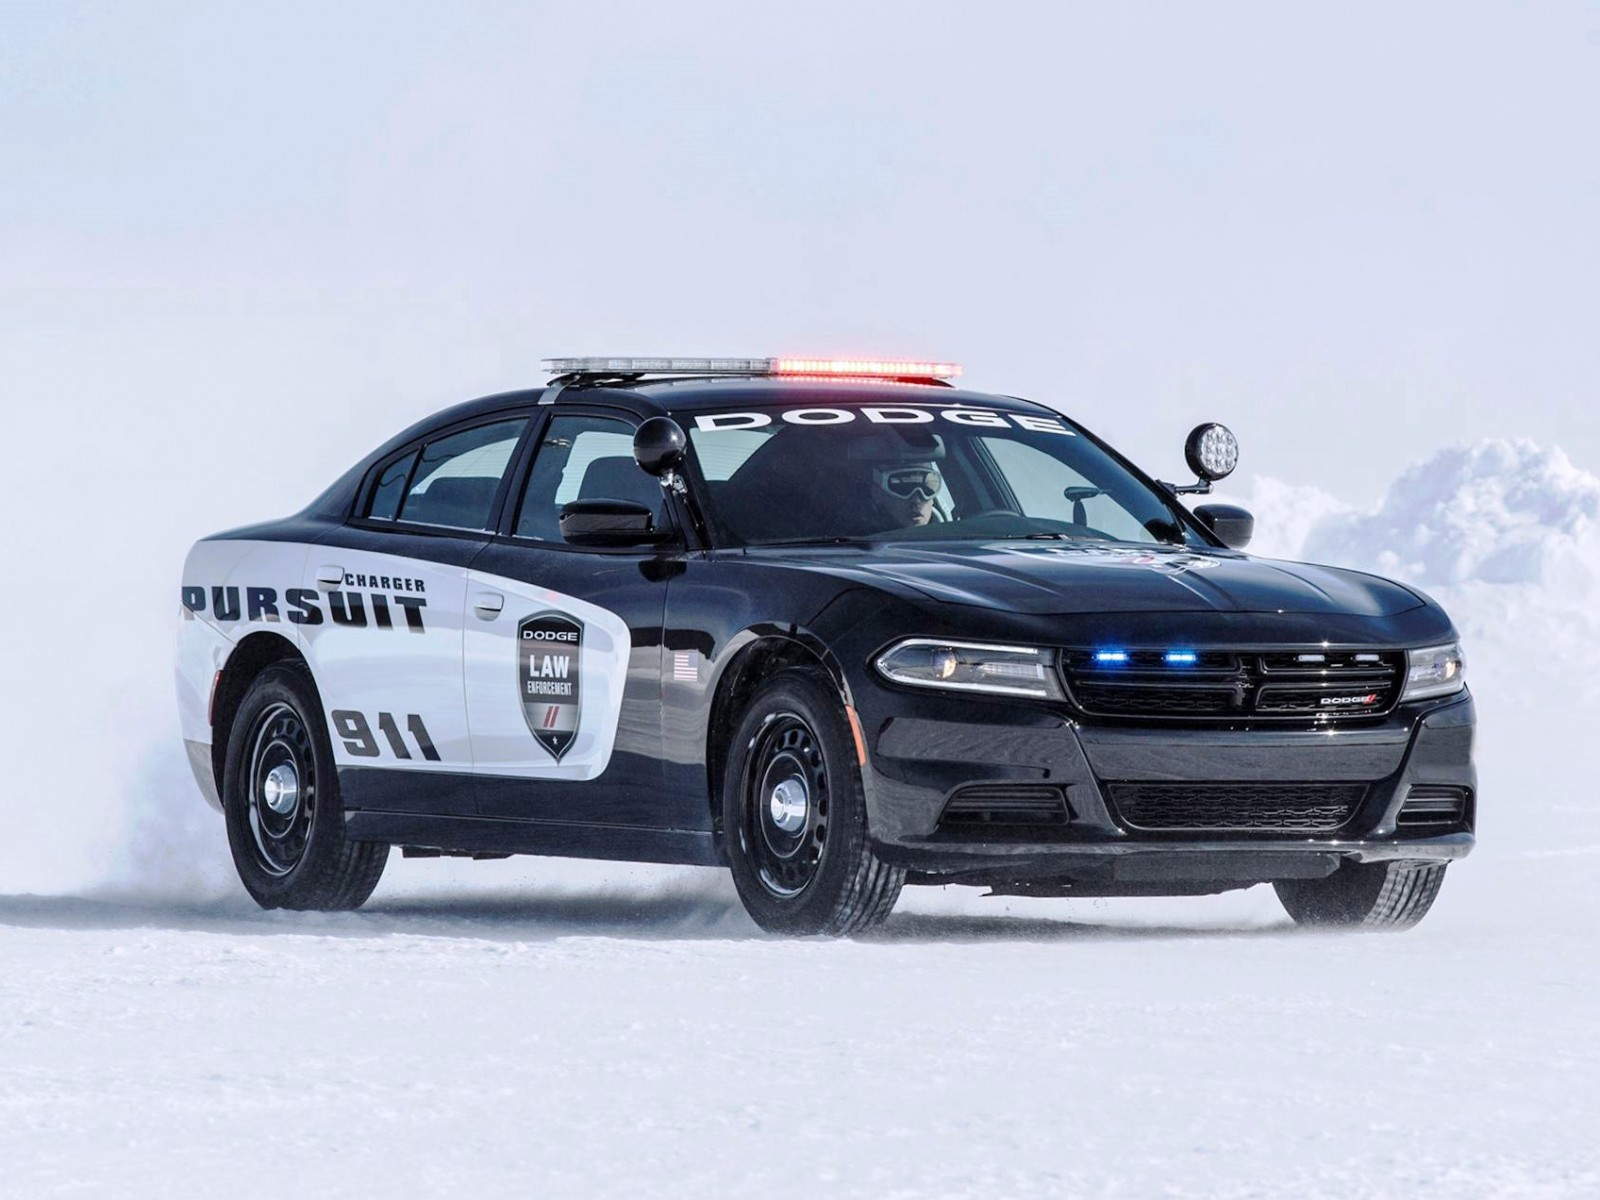 2016 dodge charger pursuit v 8 awd. Black Bedroom Furniture Sets. Home Design Ideas